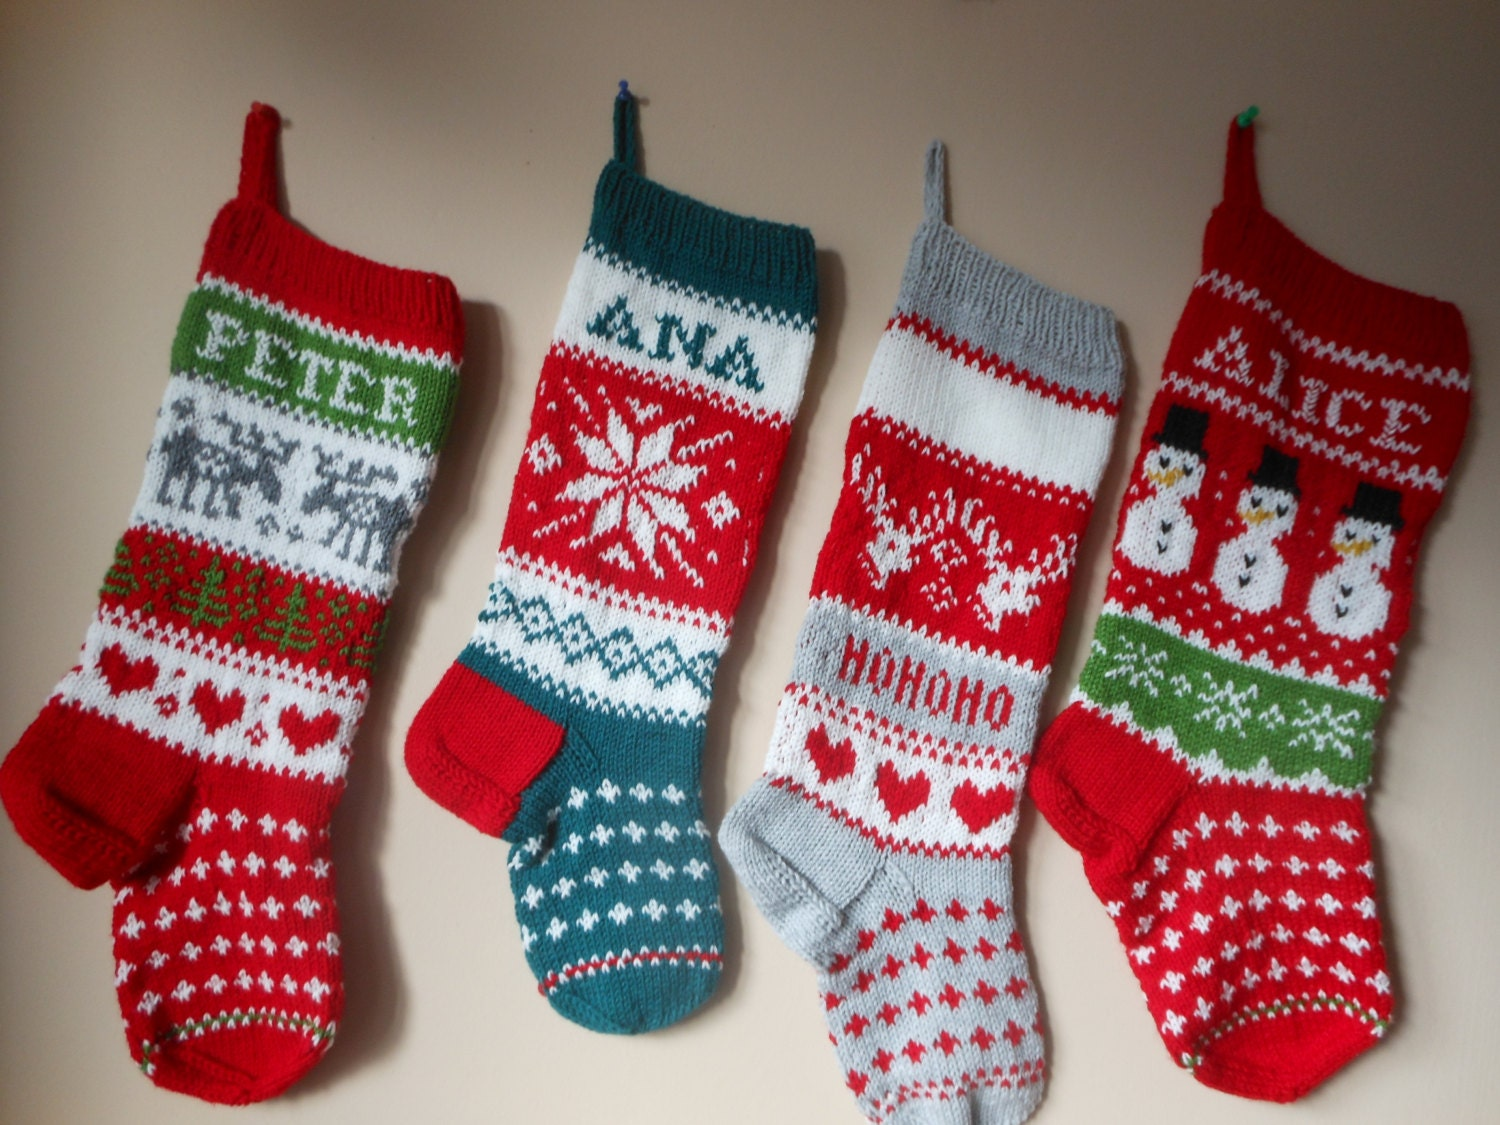 Knitting Pattern For Christmas Stocking Personalized : Personalized Christmas Stocking Hand Knitted Christmas Gift